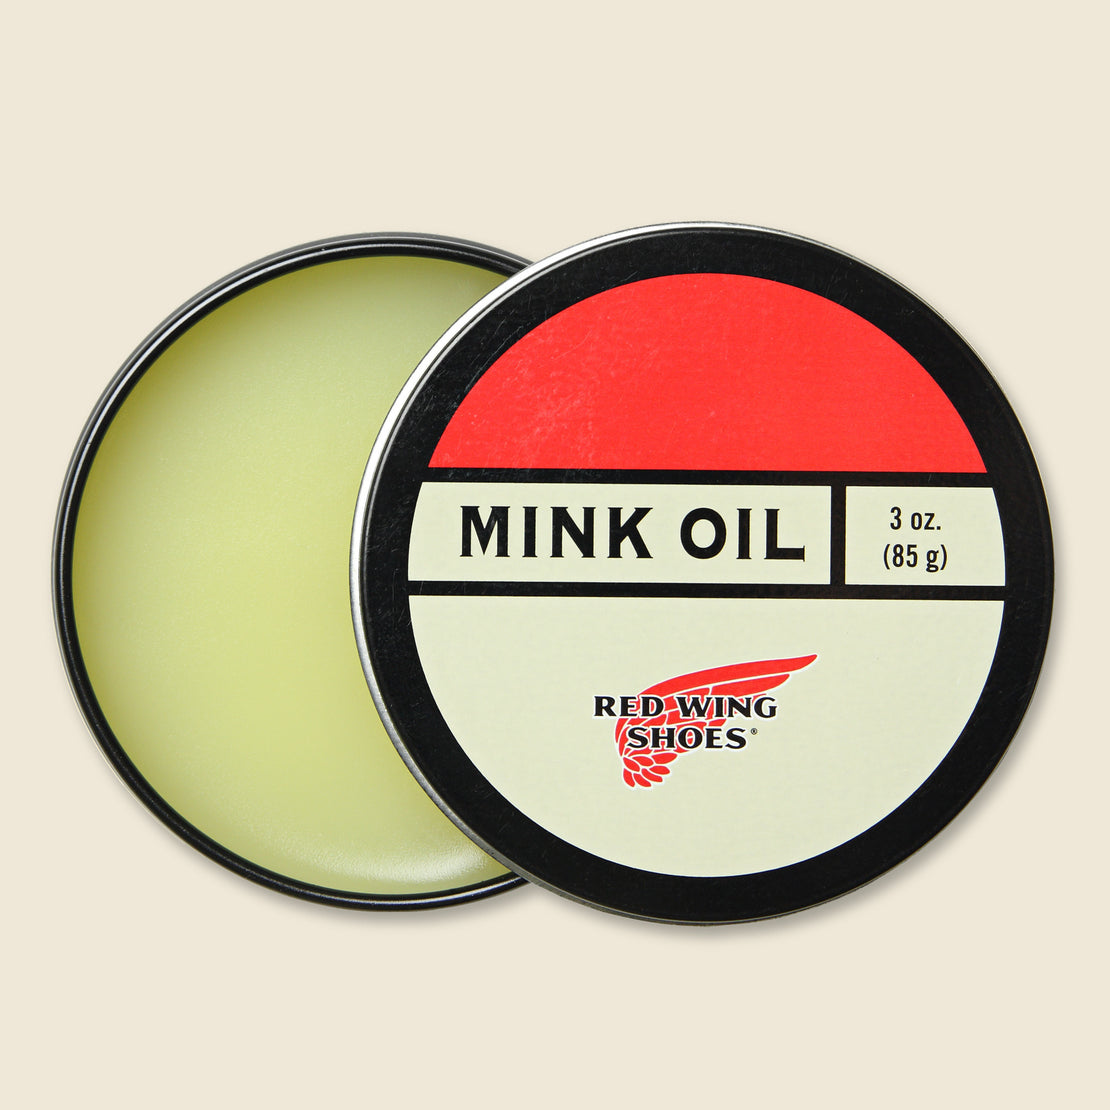 Red Wing Red Wing - Mink Oil - 3 oz